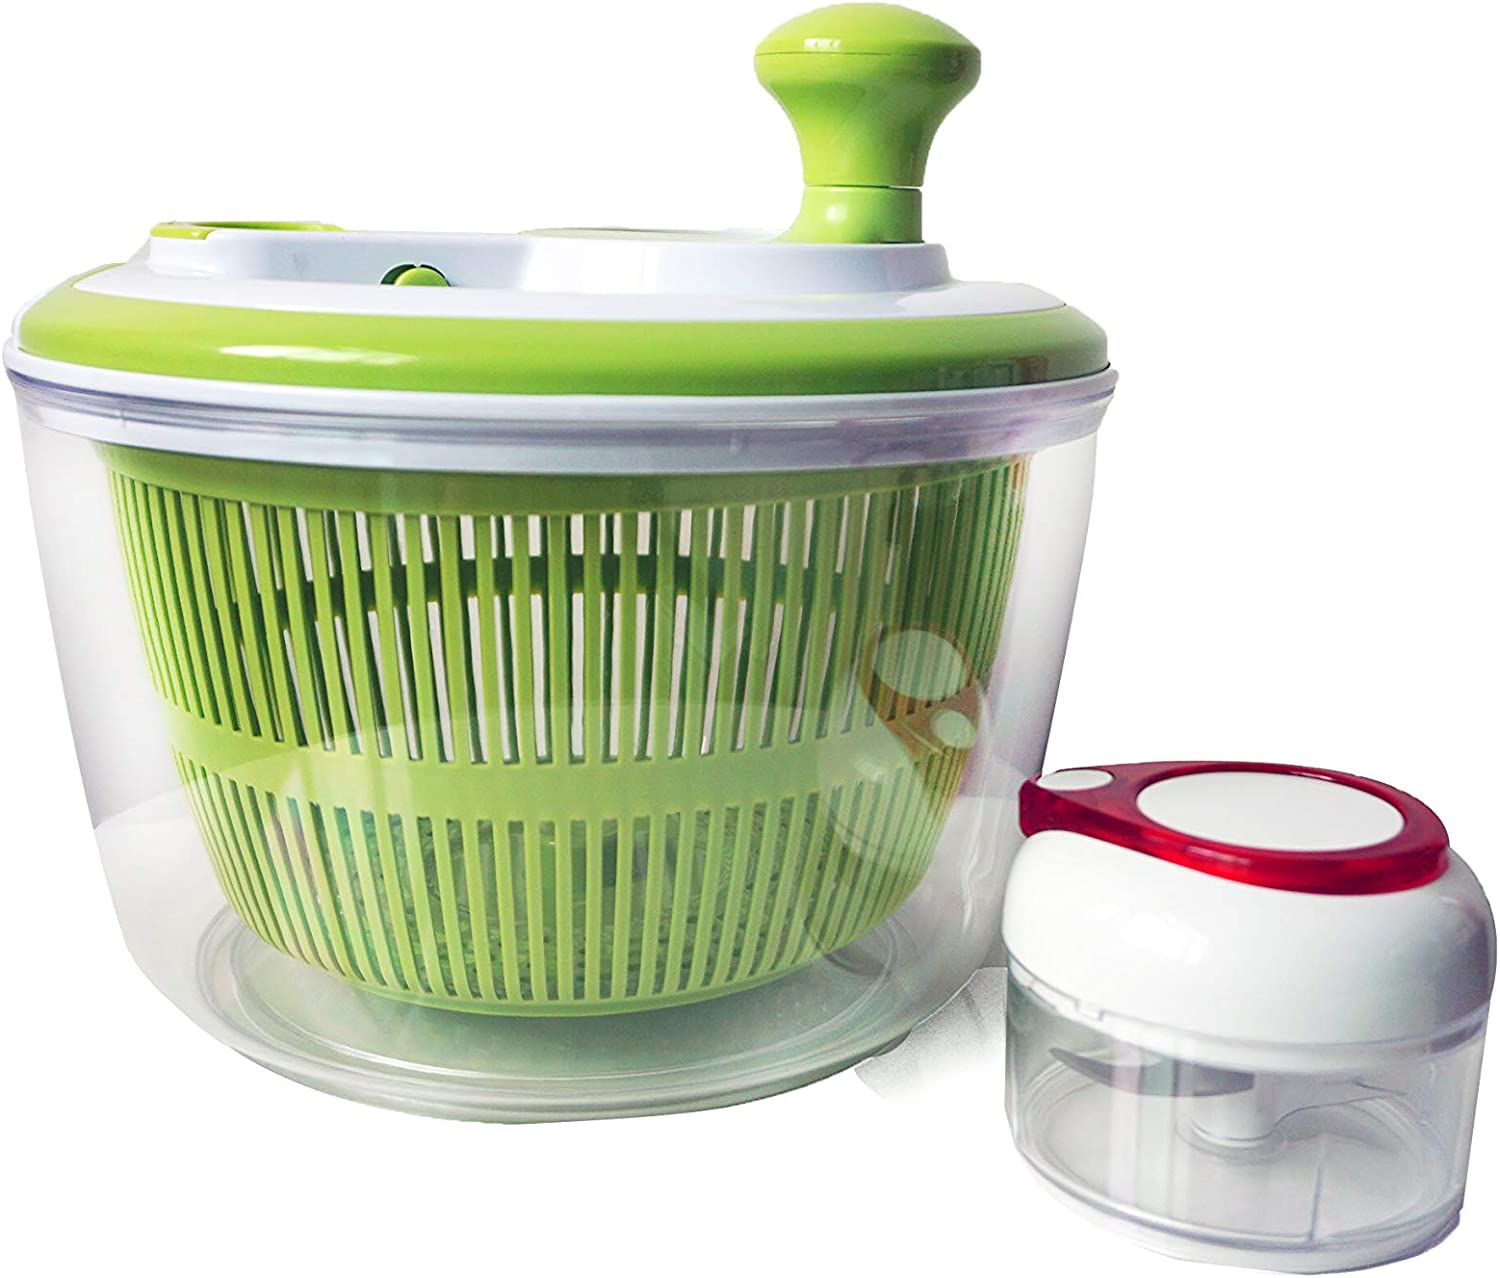 RTMAXCO Max 44% OFF Salad Spinner 5L Vegetable Dryer Washer NEW before selling ☆ Fruits